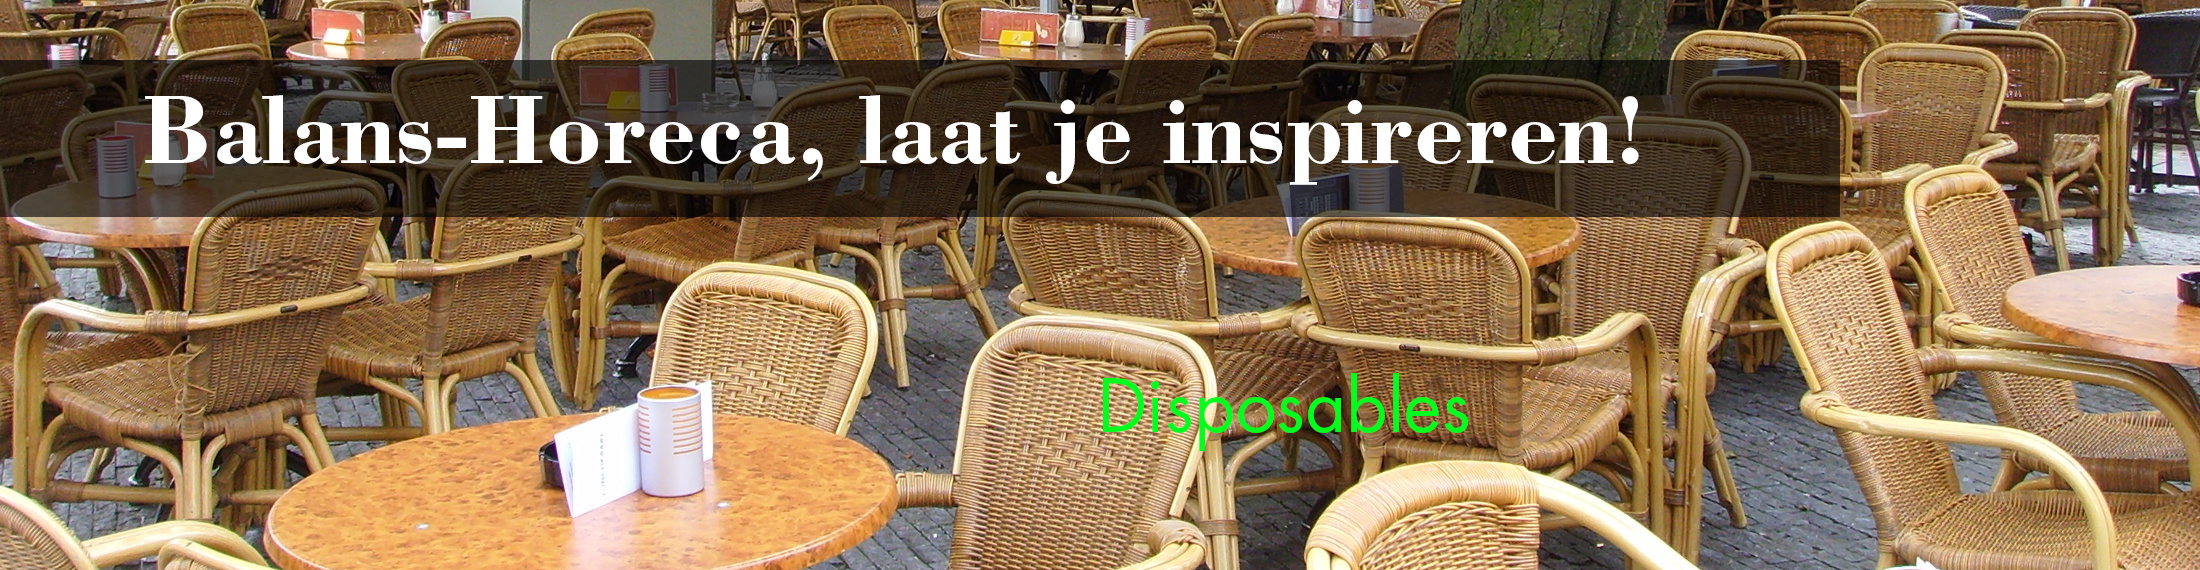 Dispsoables voor de horeca